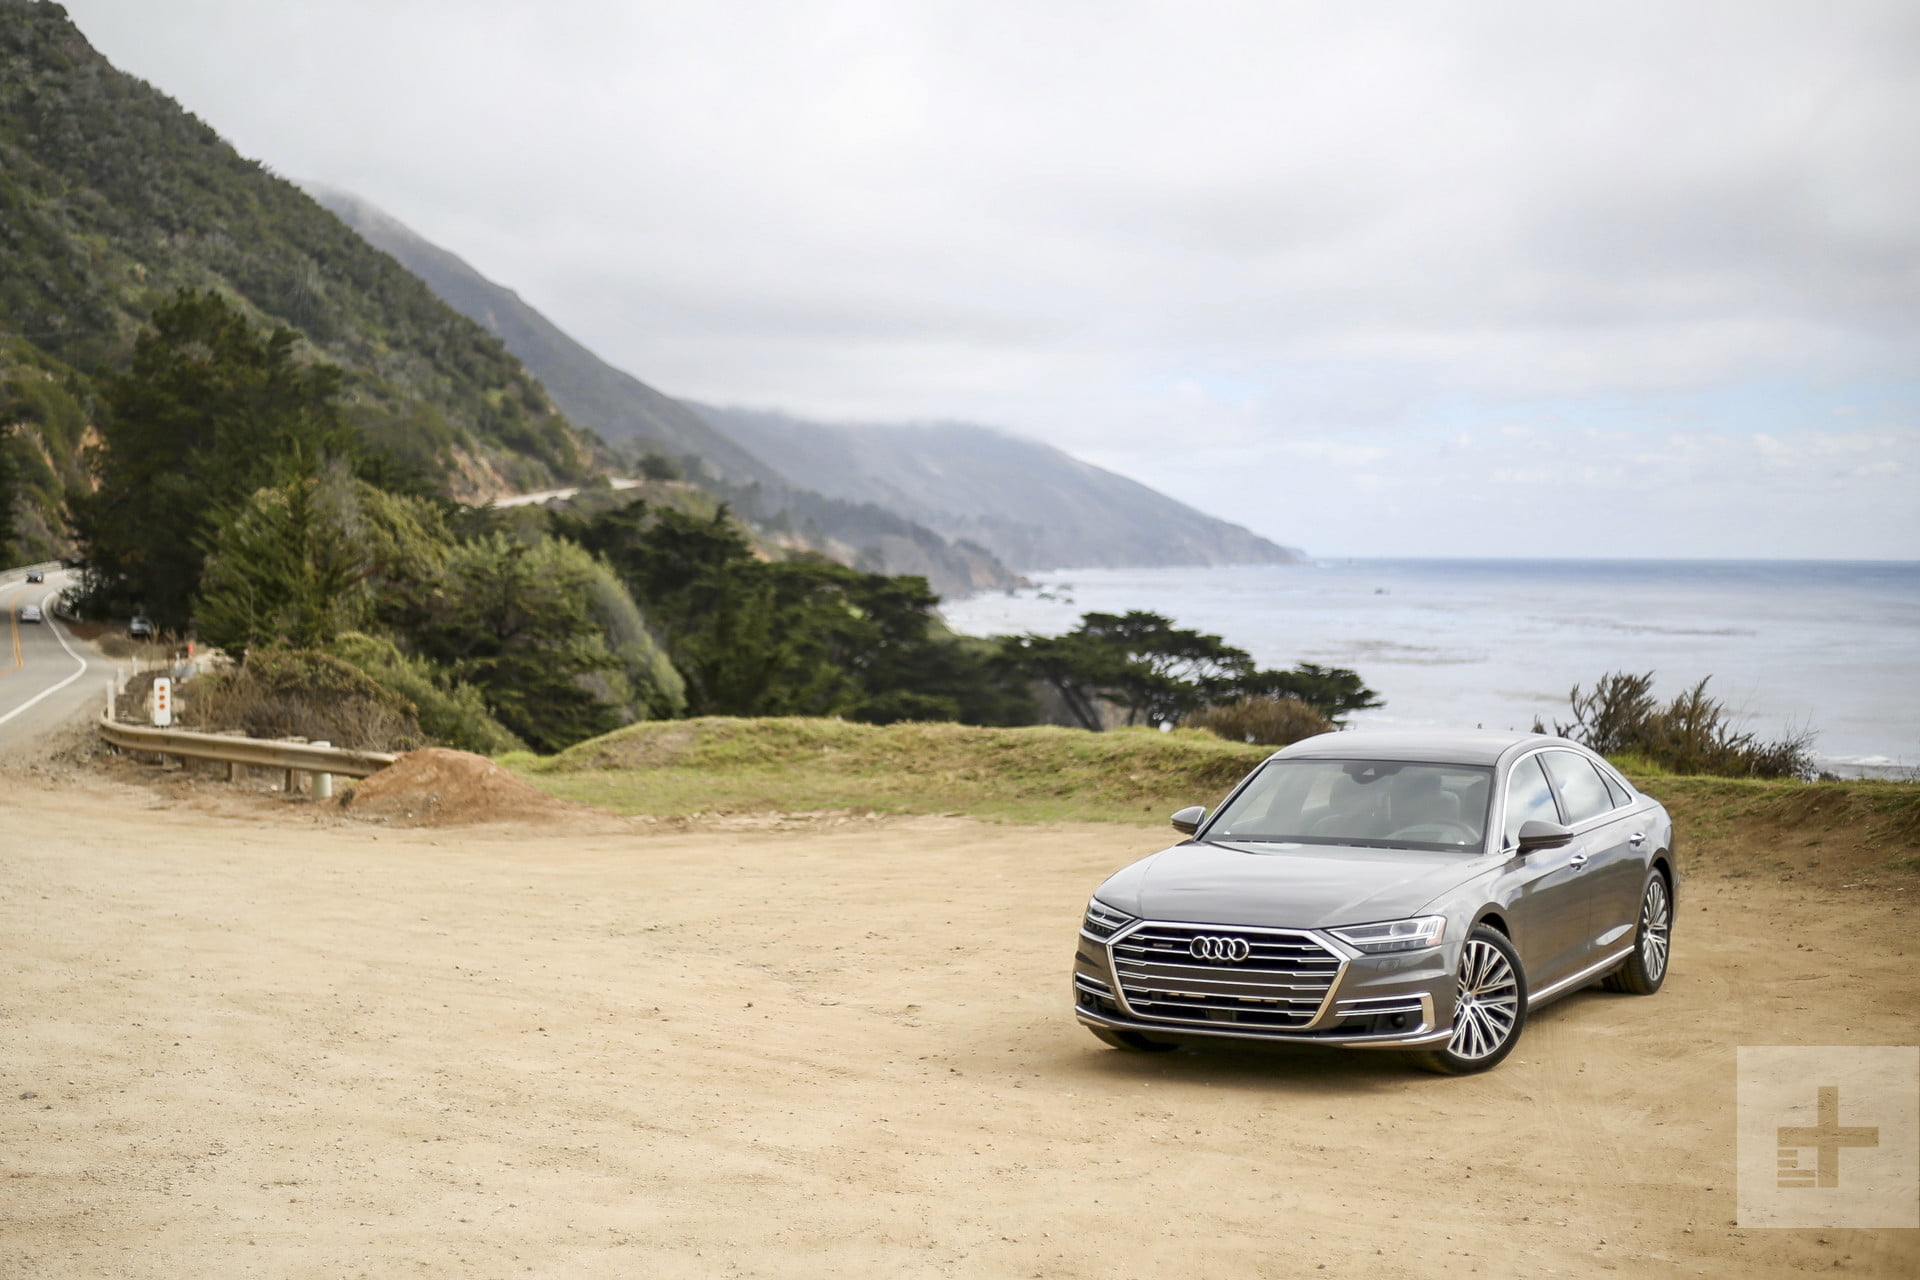 Audi's new A8 is so sophisticated and serene, it practically deletes potholes